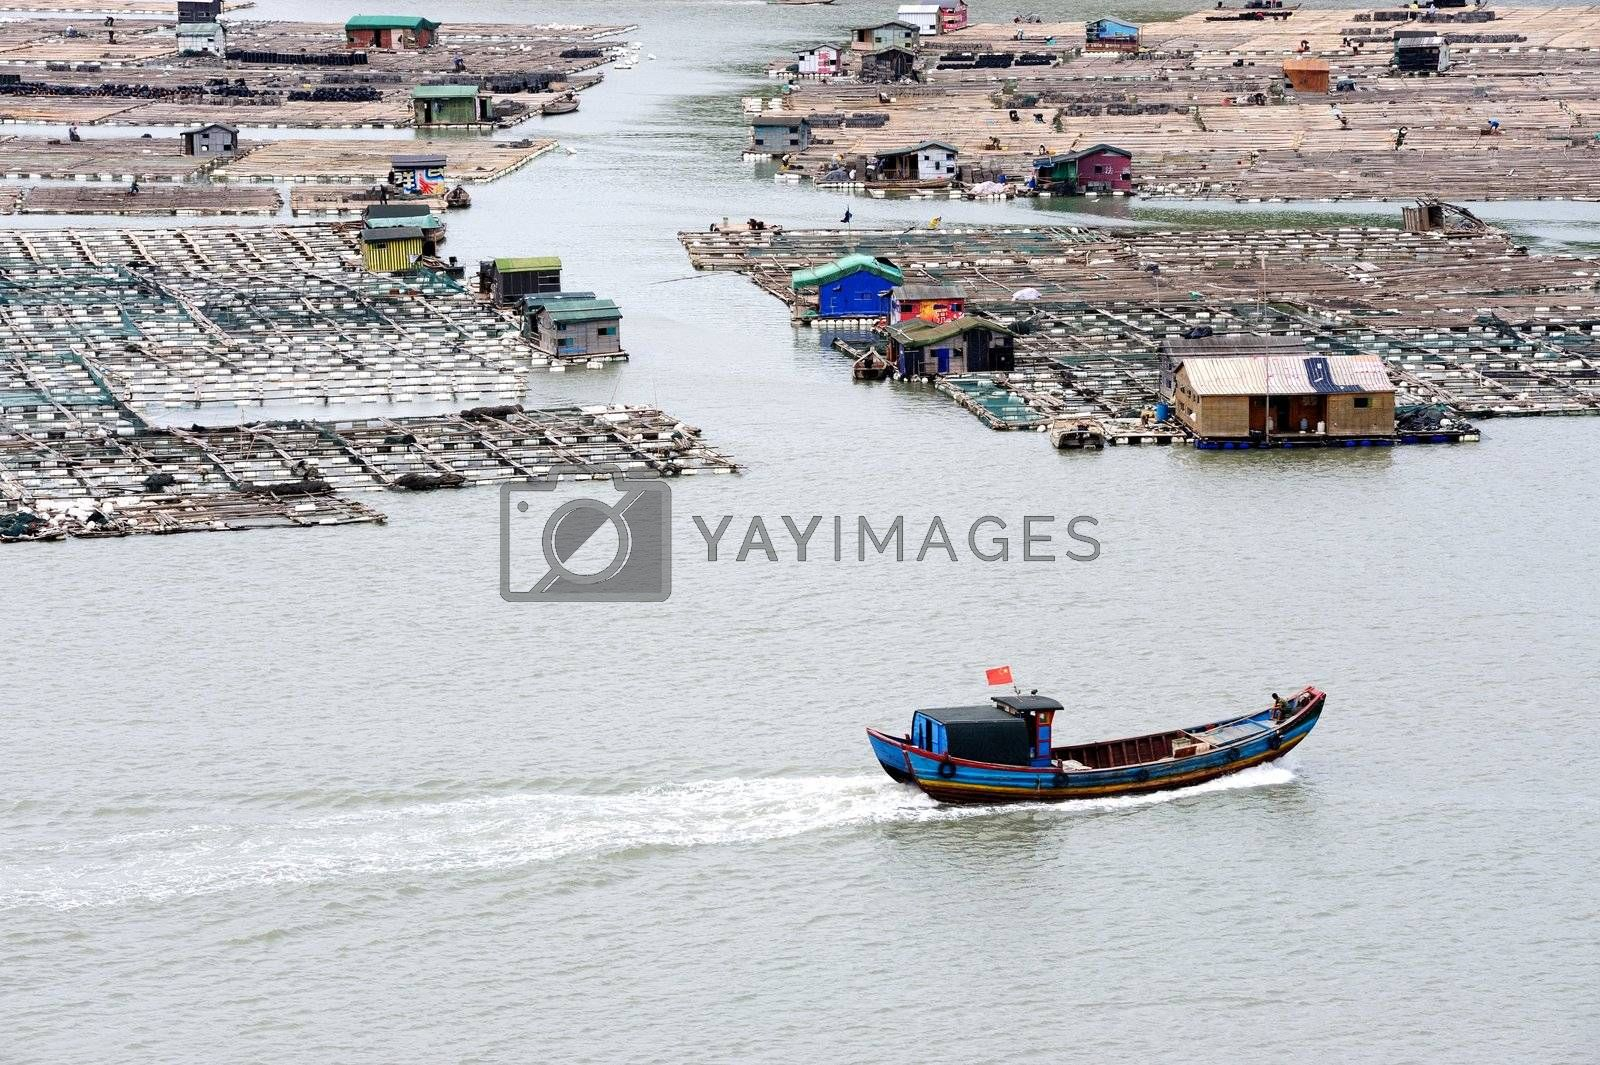 Sea village and boat on the ocean in Fujian province of China